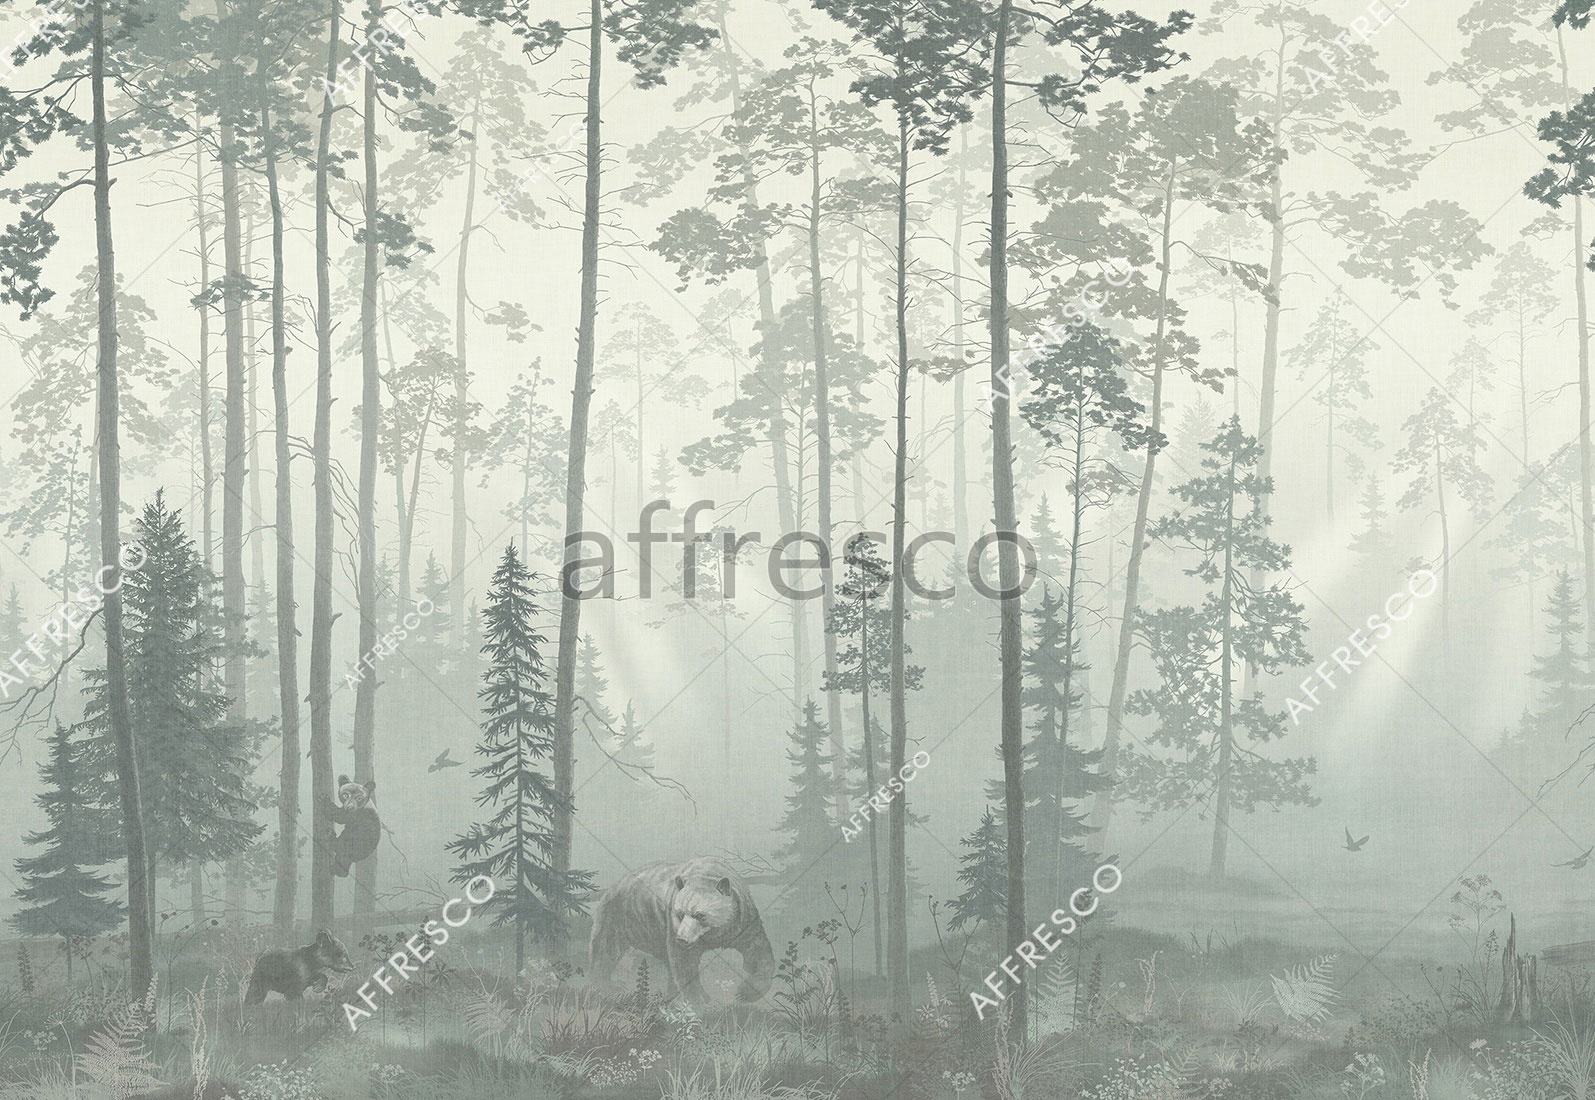 ID135997 | Forest |  | Affresco Factory